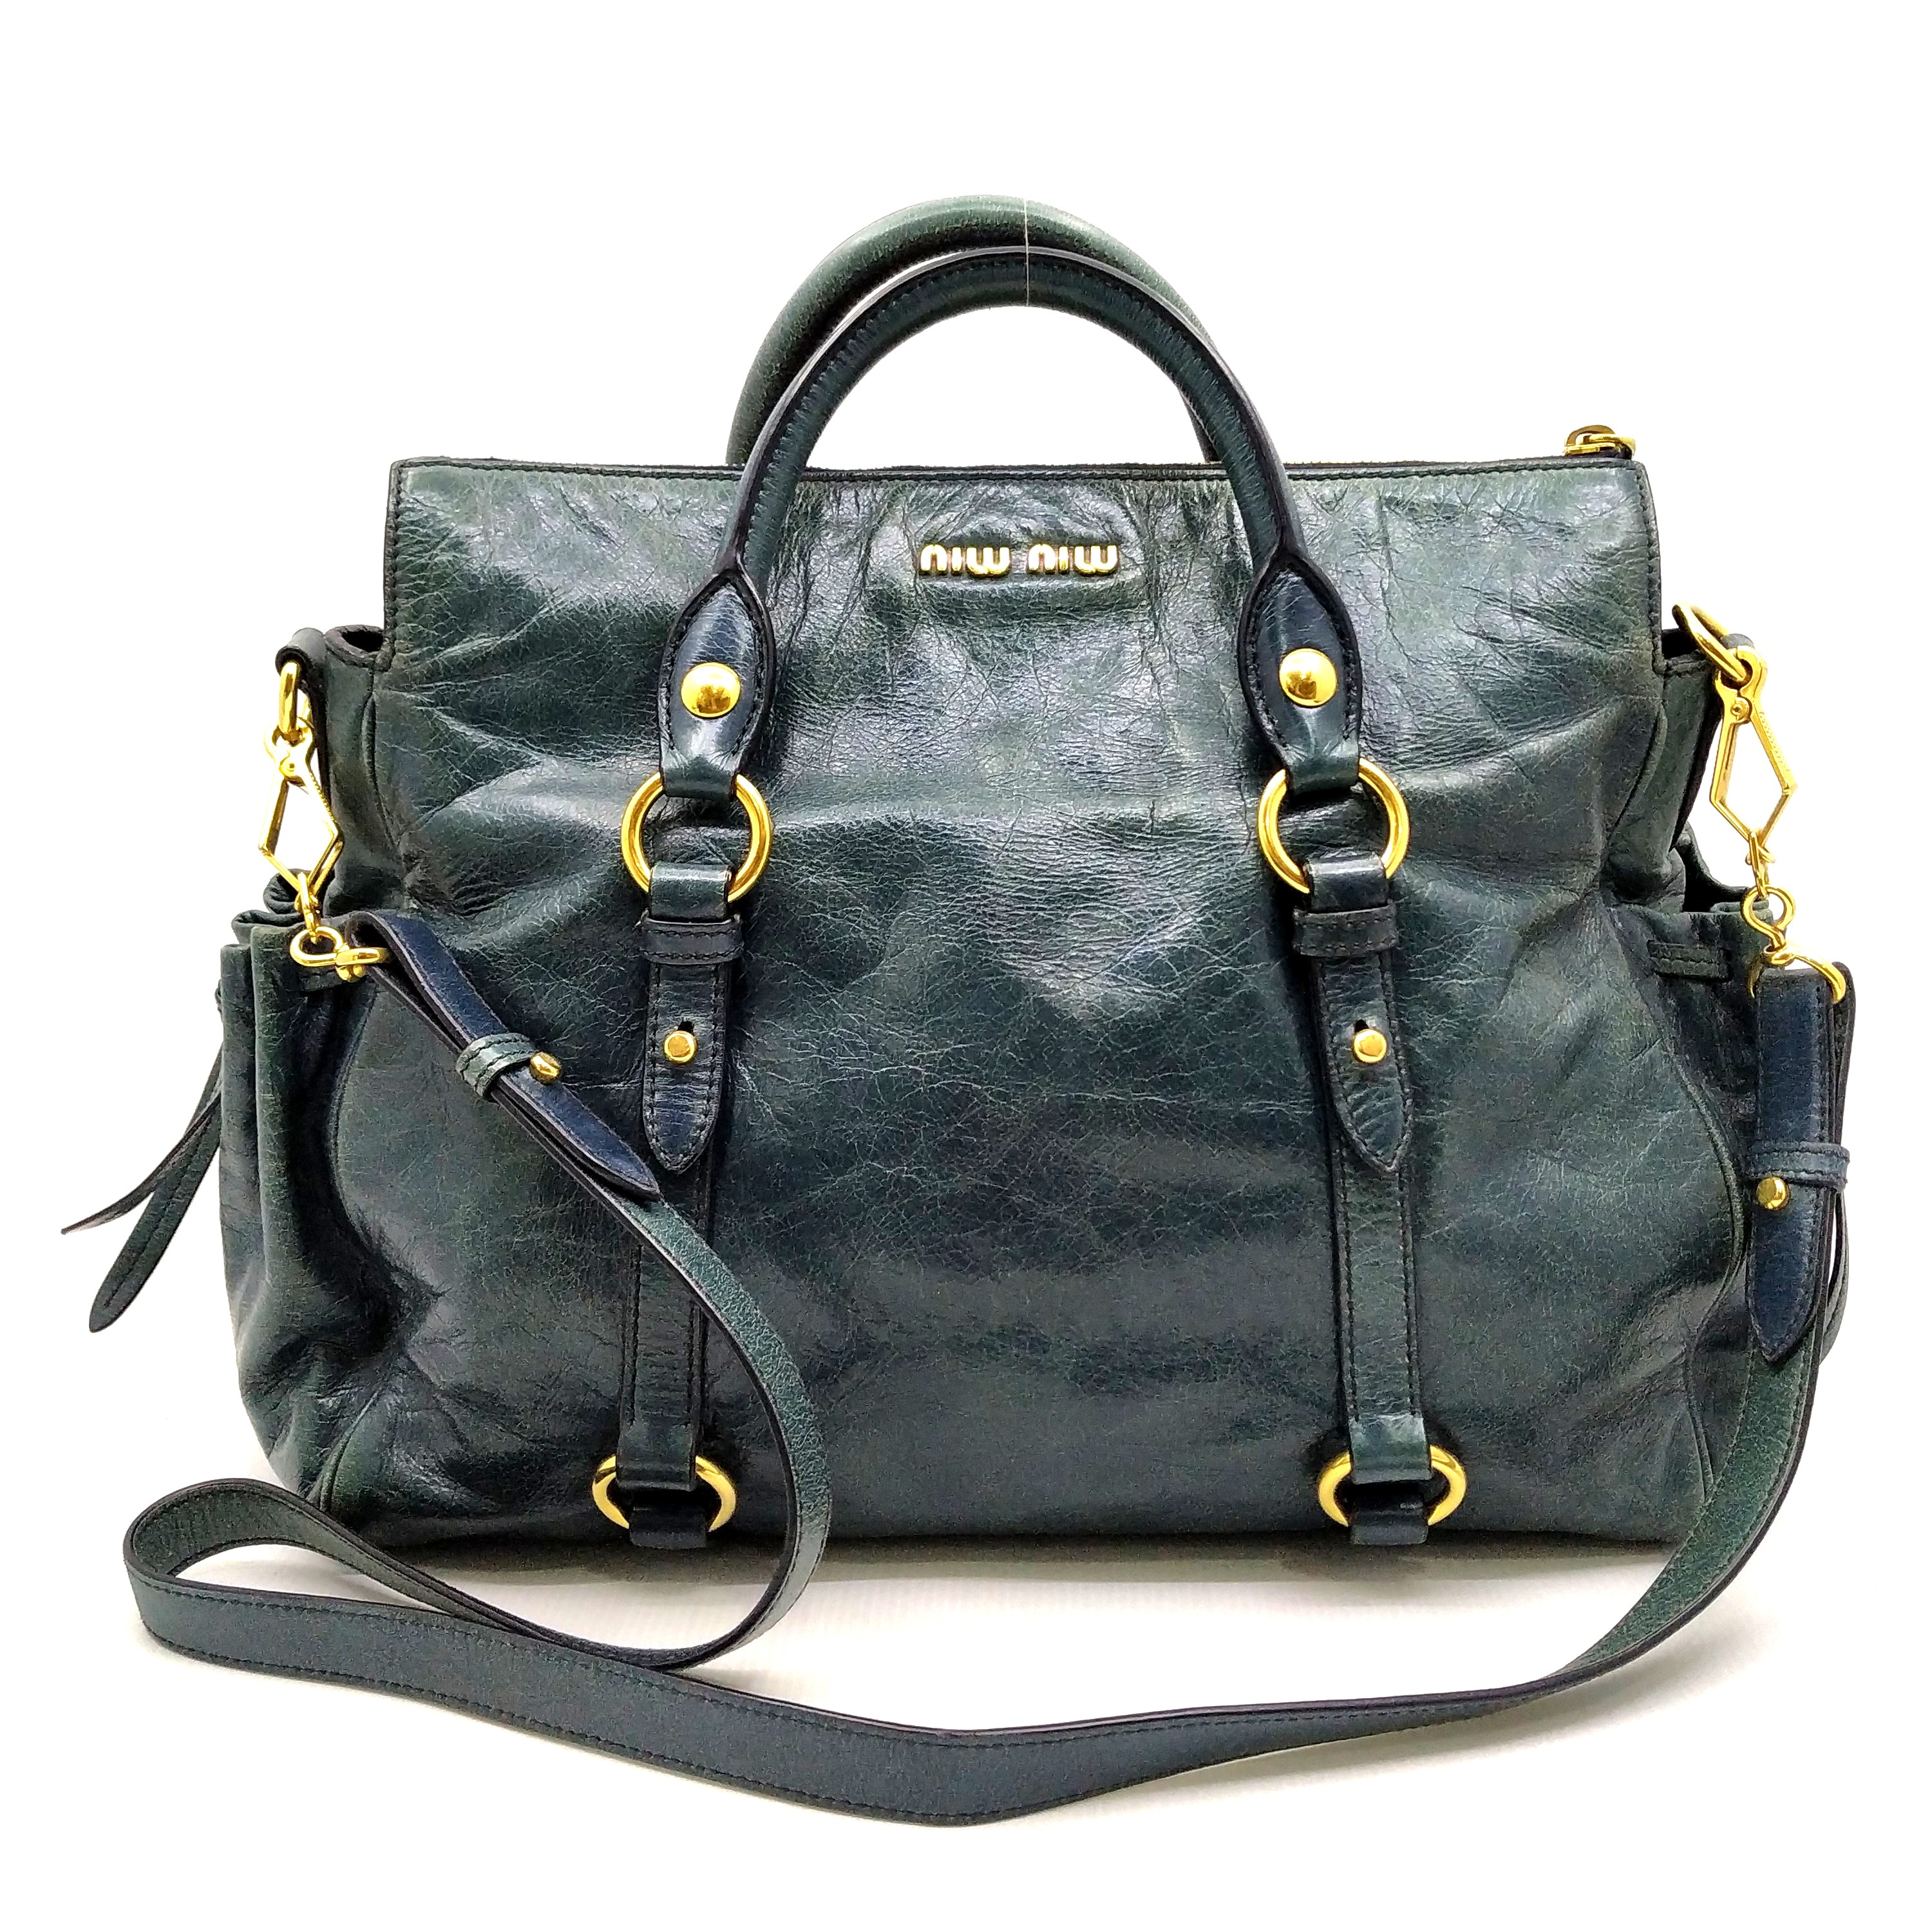 939f59bd37a9 Miu Miu 2Way Turq Bag 197000438